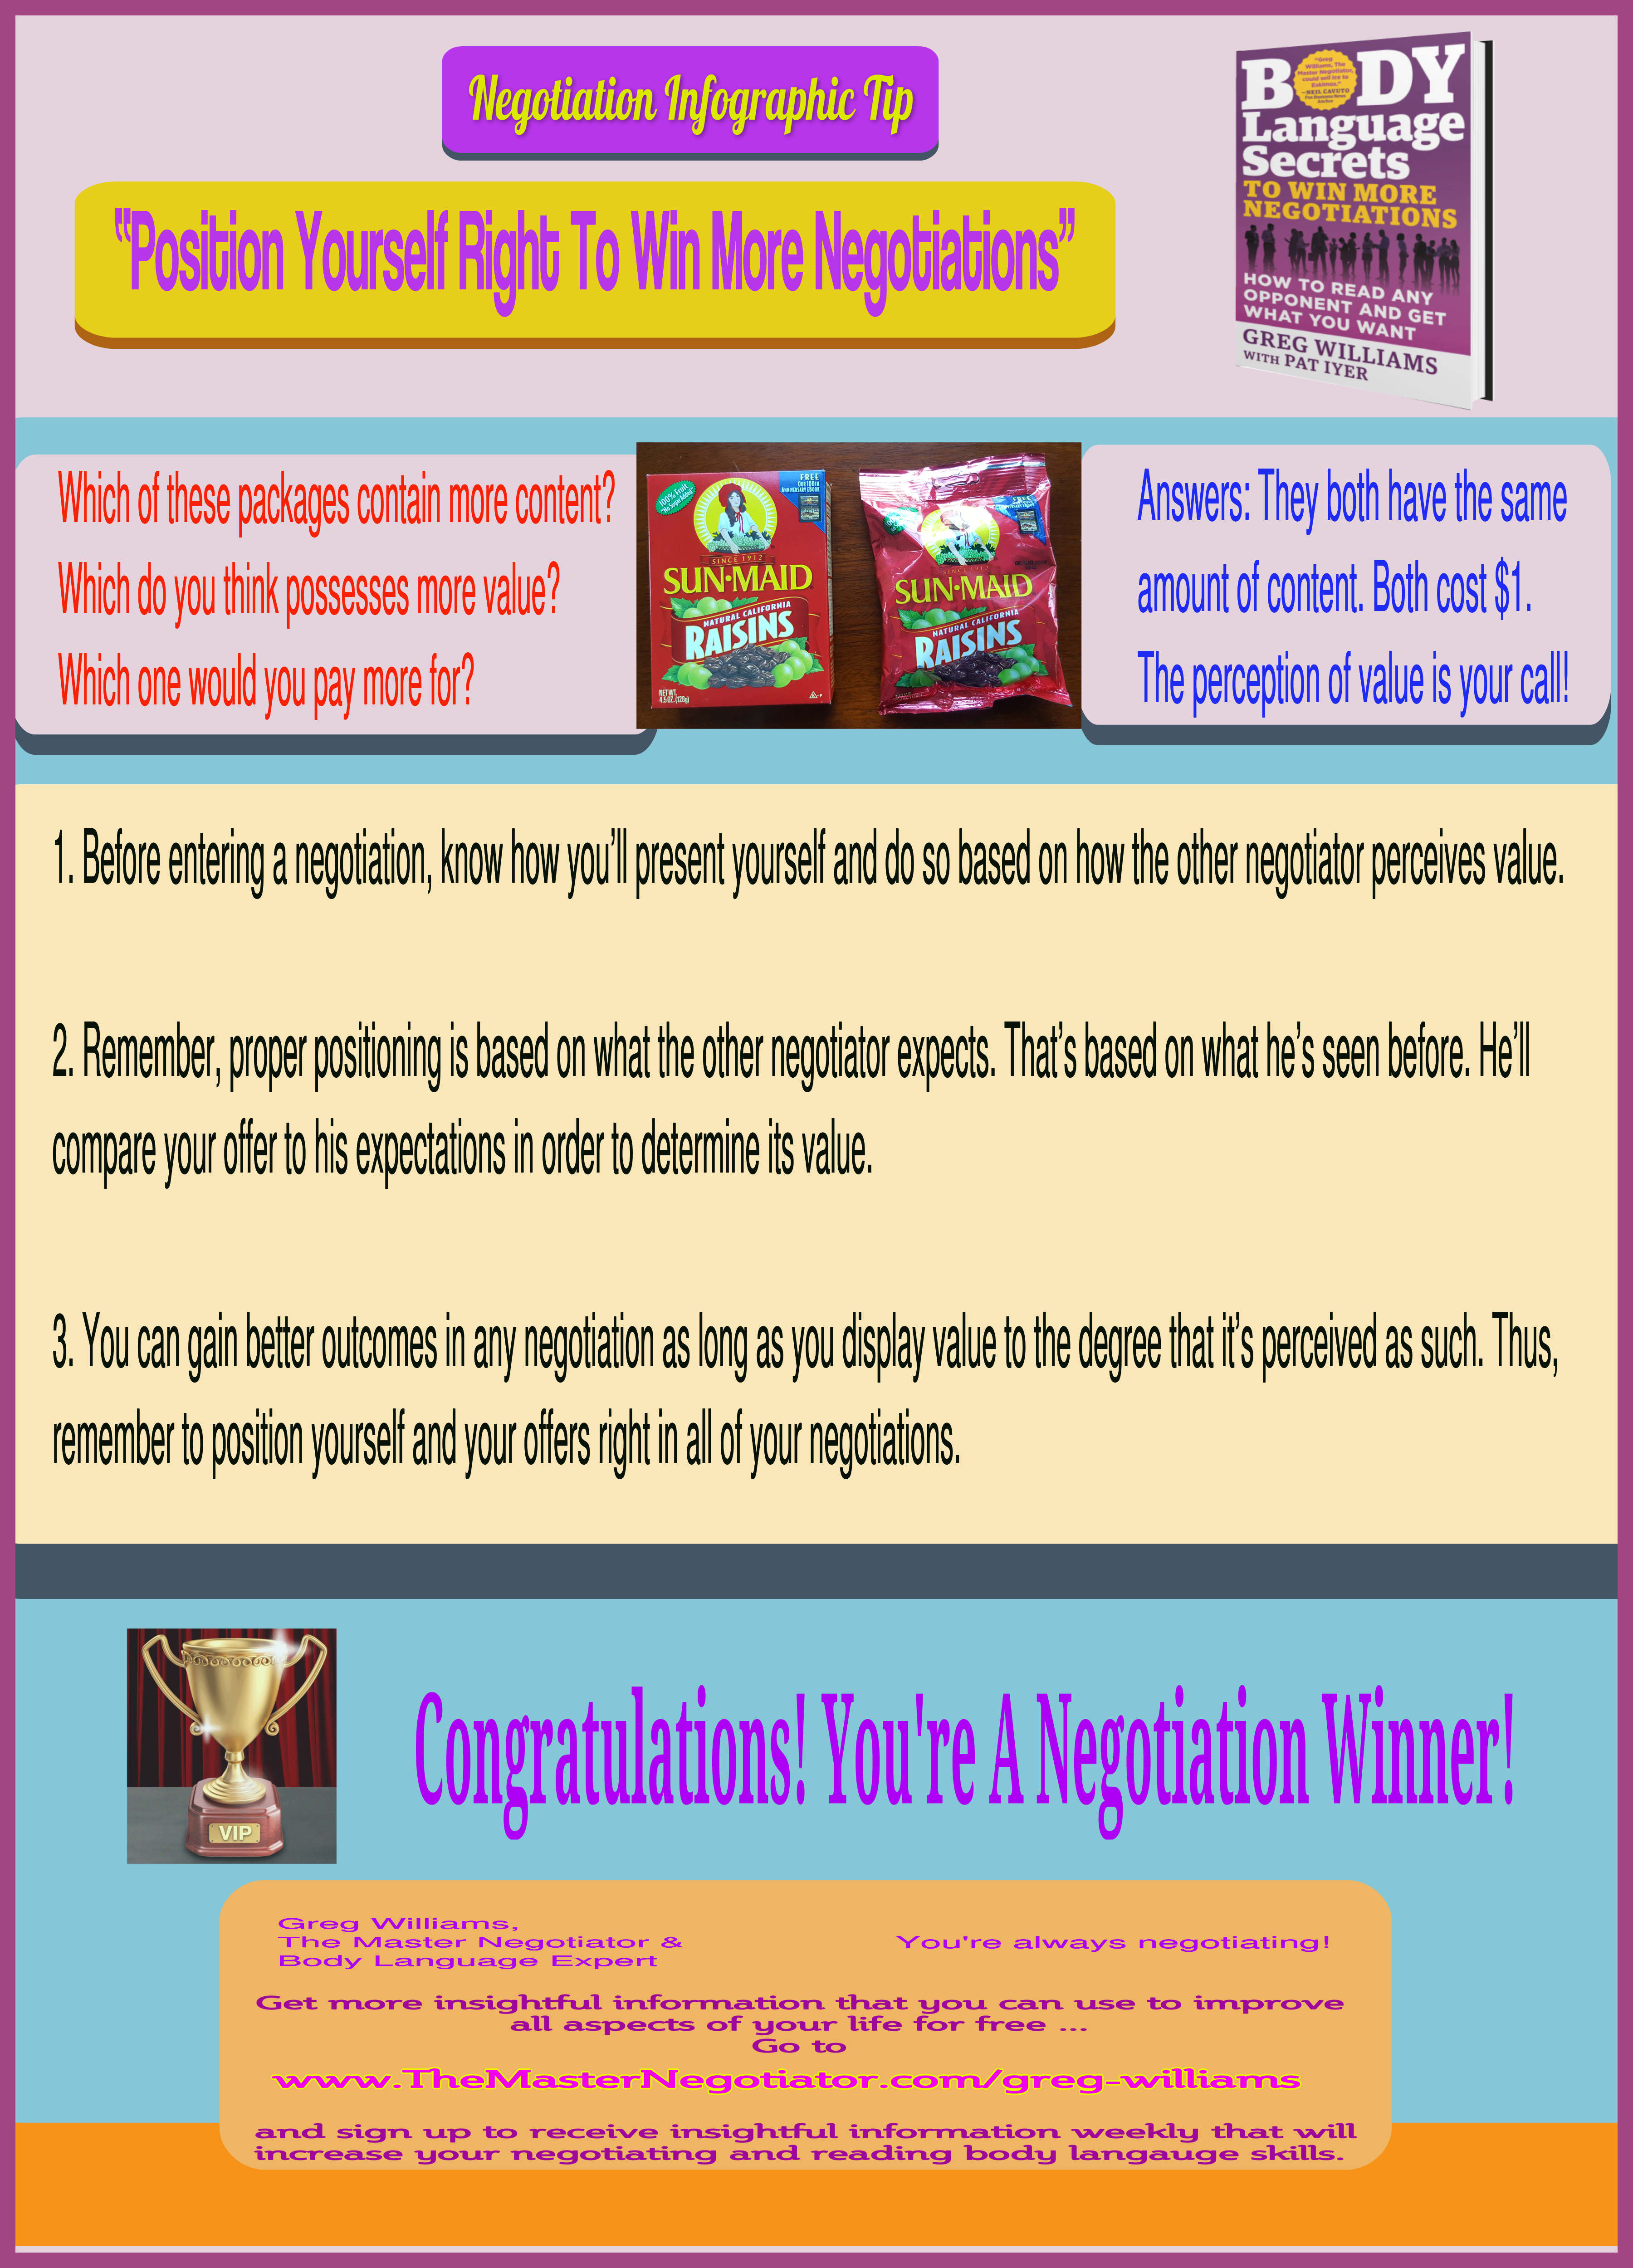 Position Yourself Right To Win More Negotiations